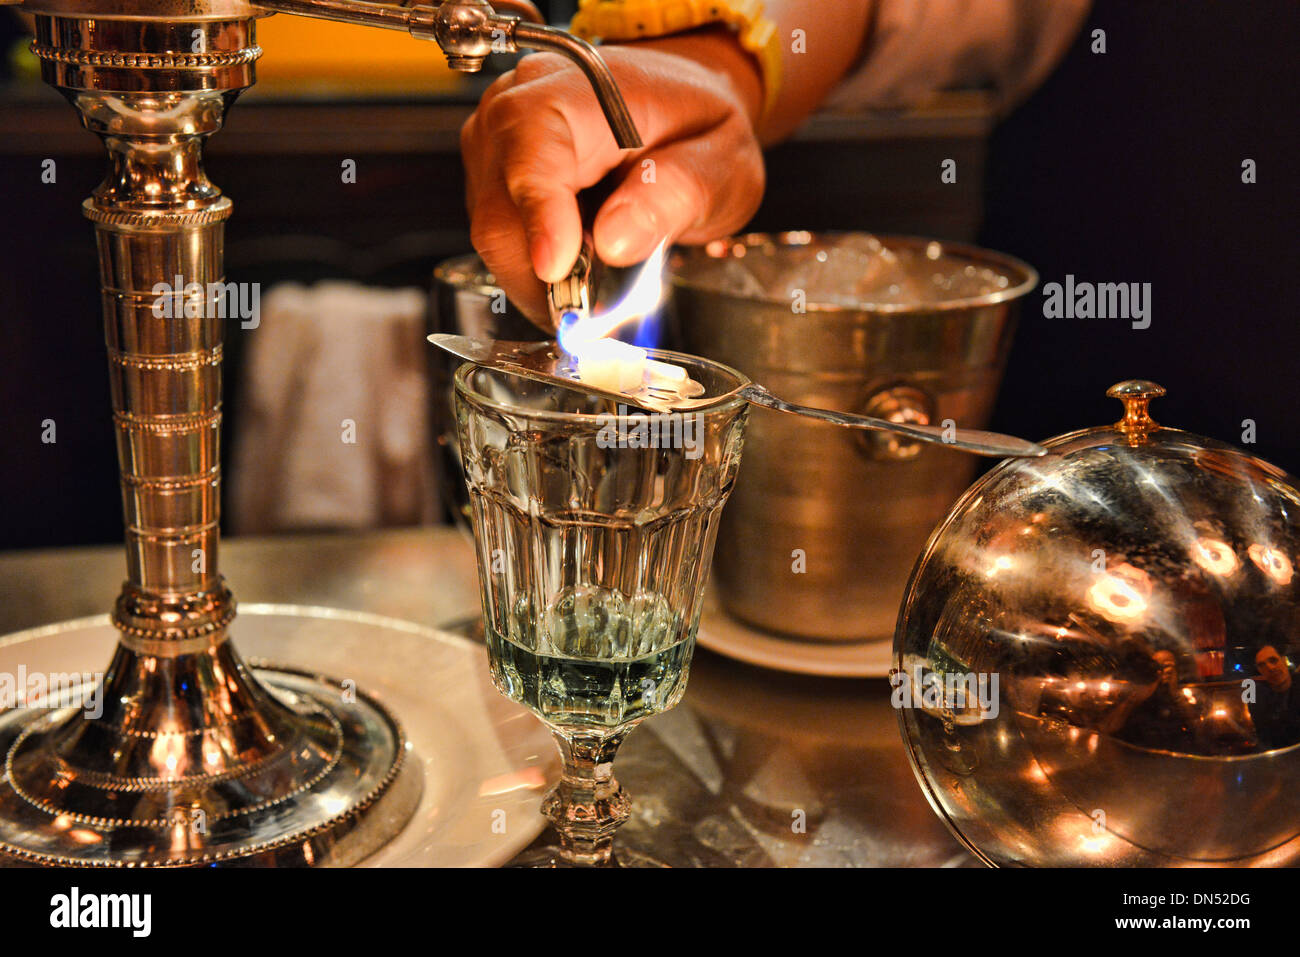 pouring absinthe the traditional way, Bangkok, Thailand - Stock Image